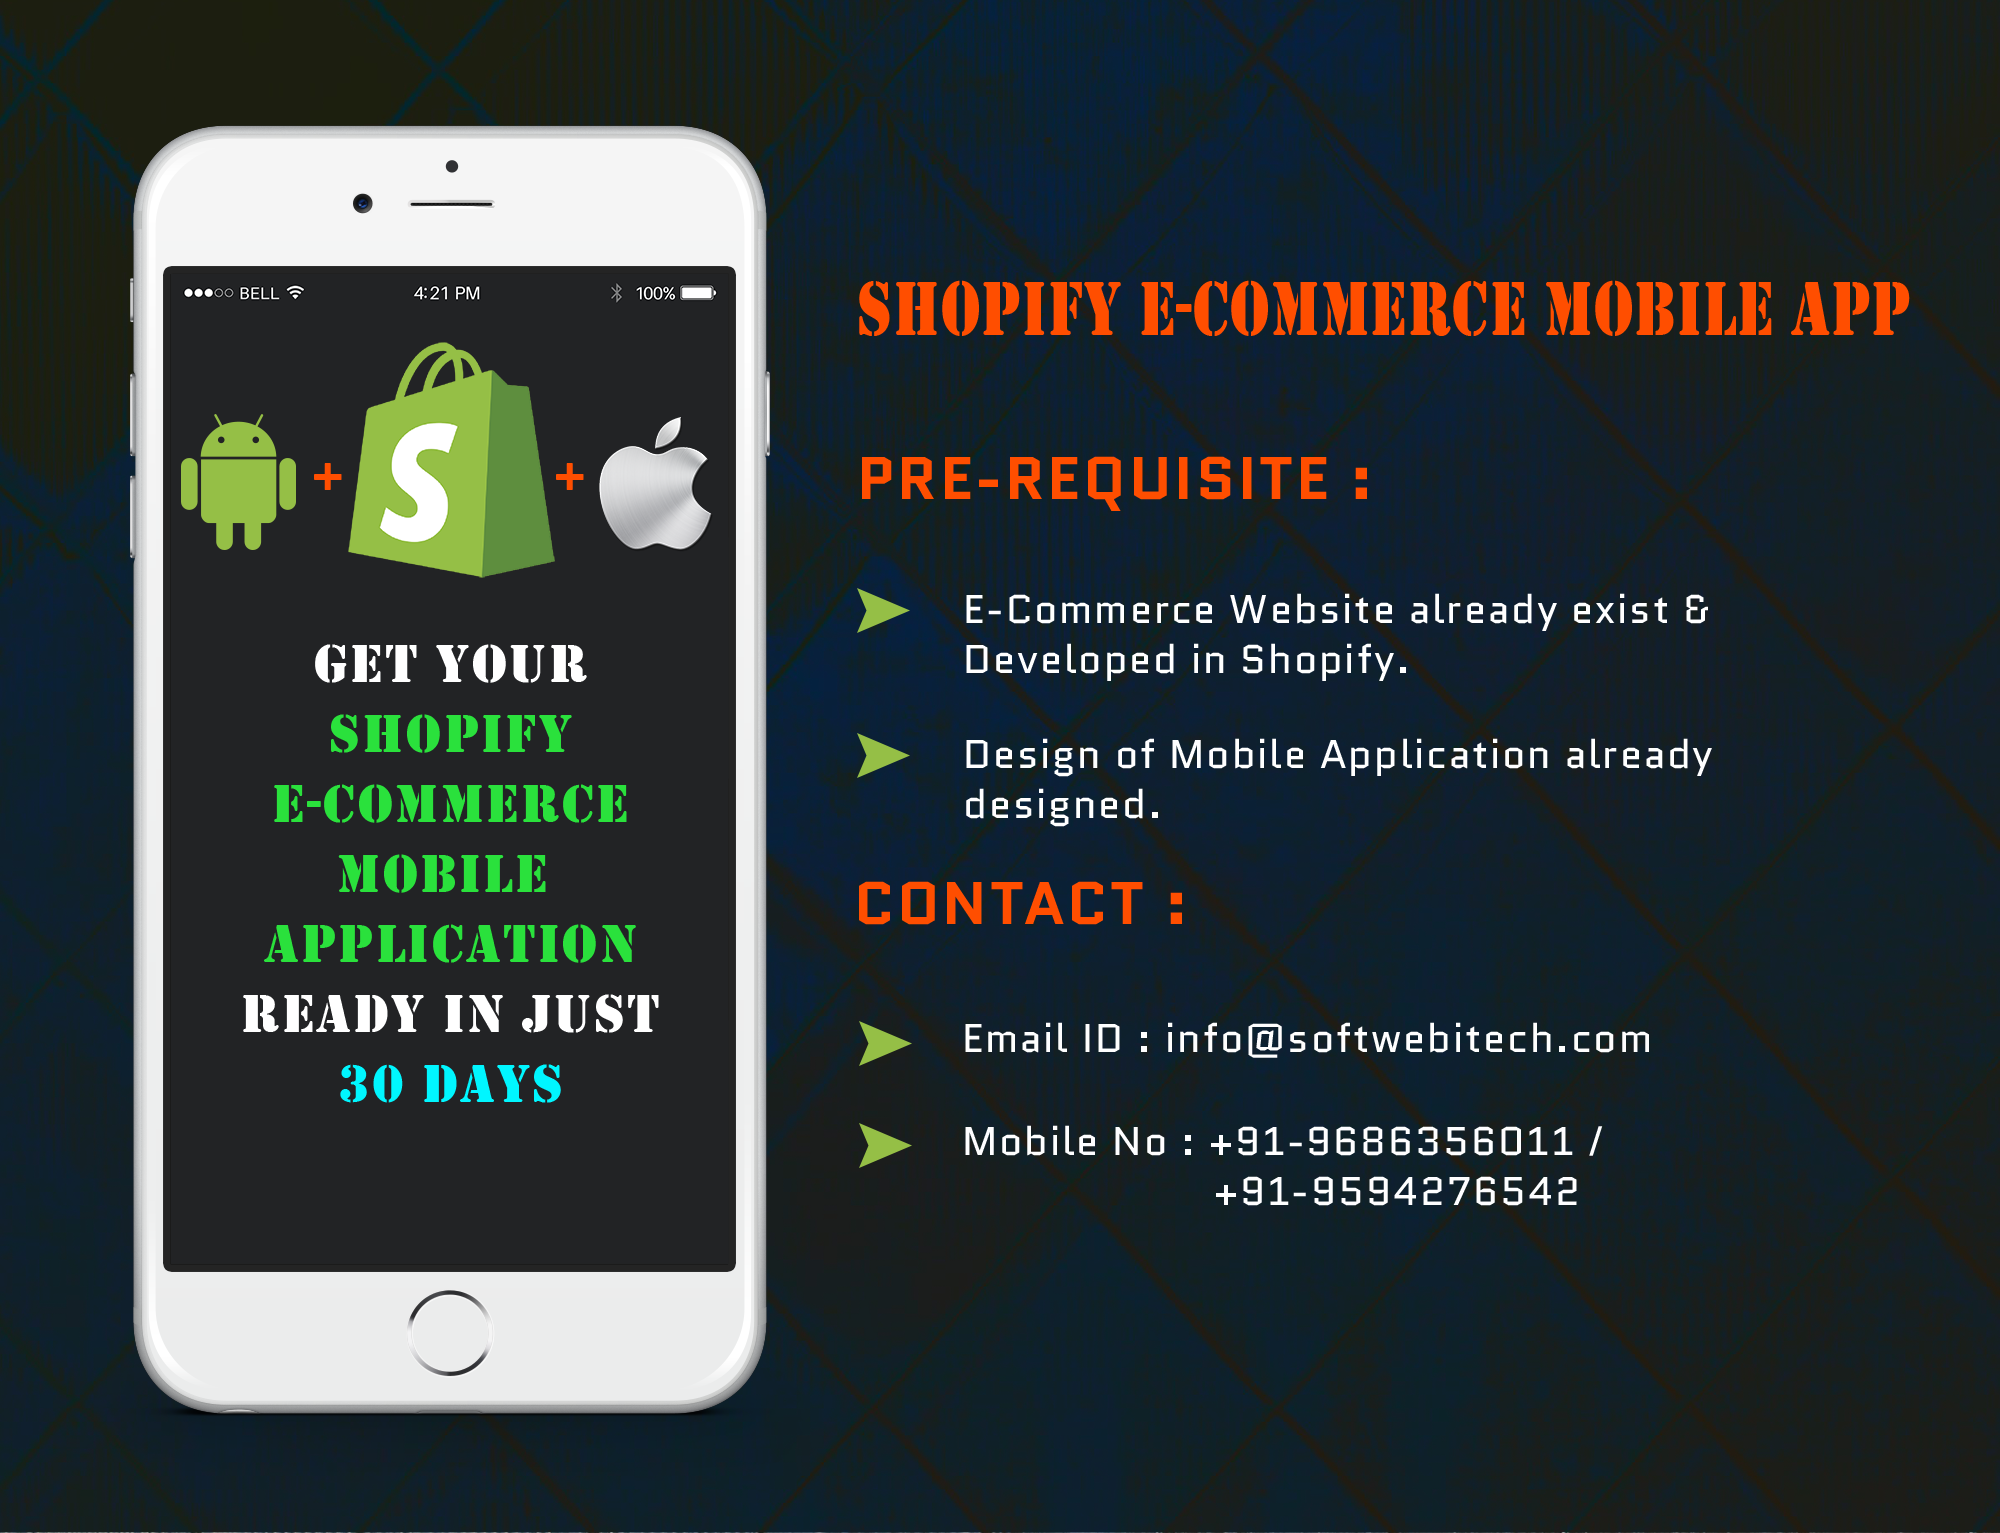 Shopify E-Commerce Mobile Application